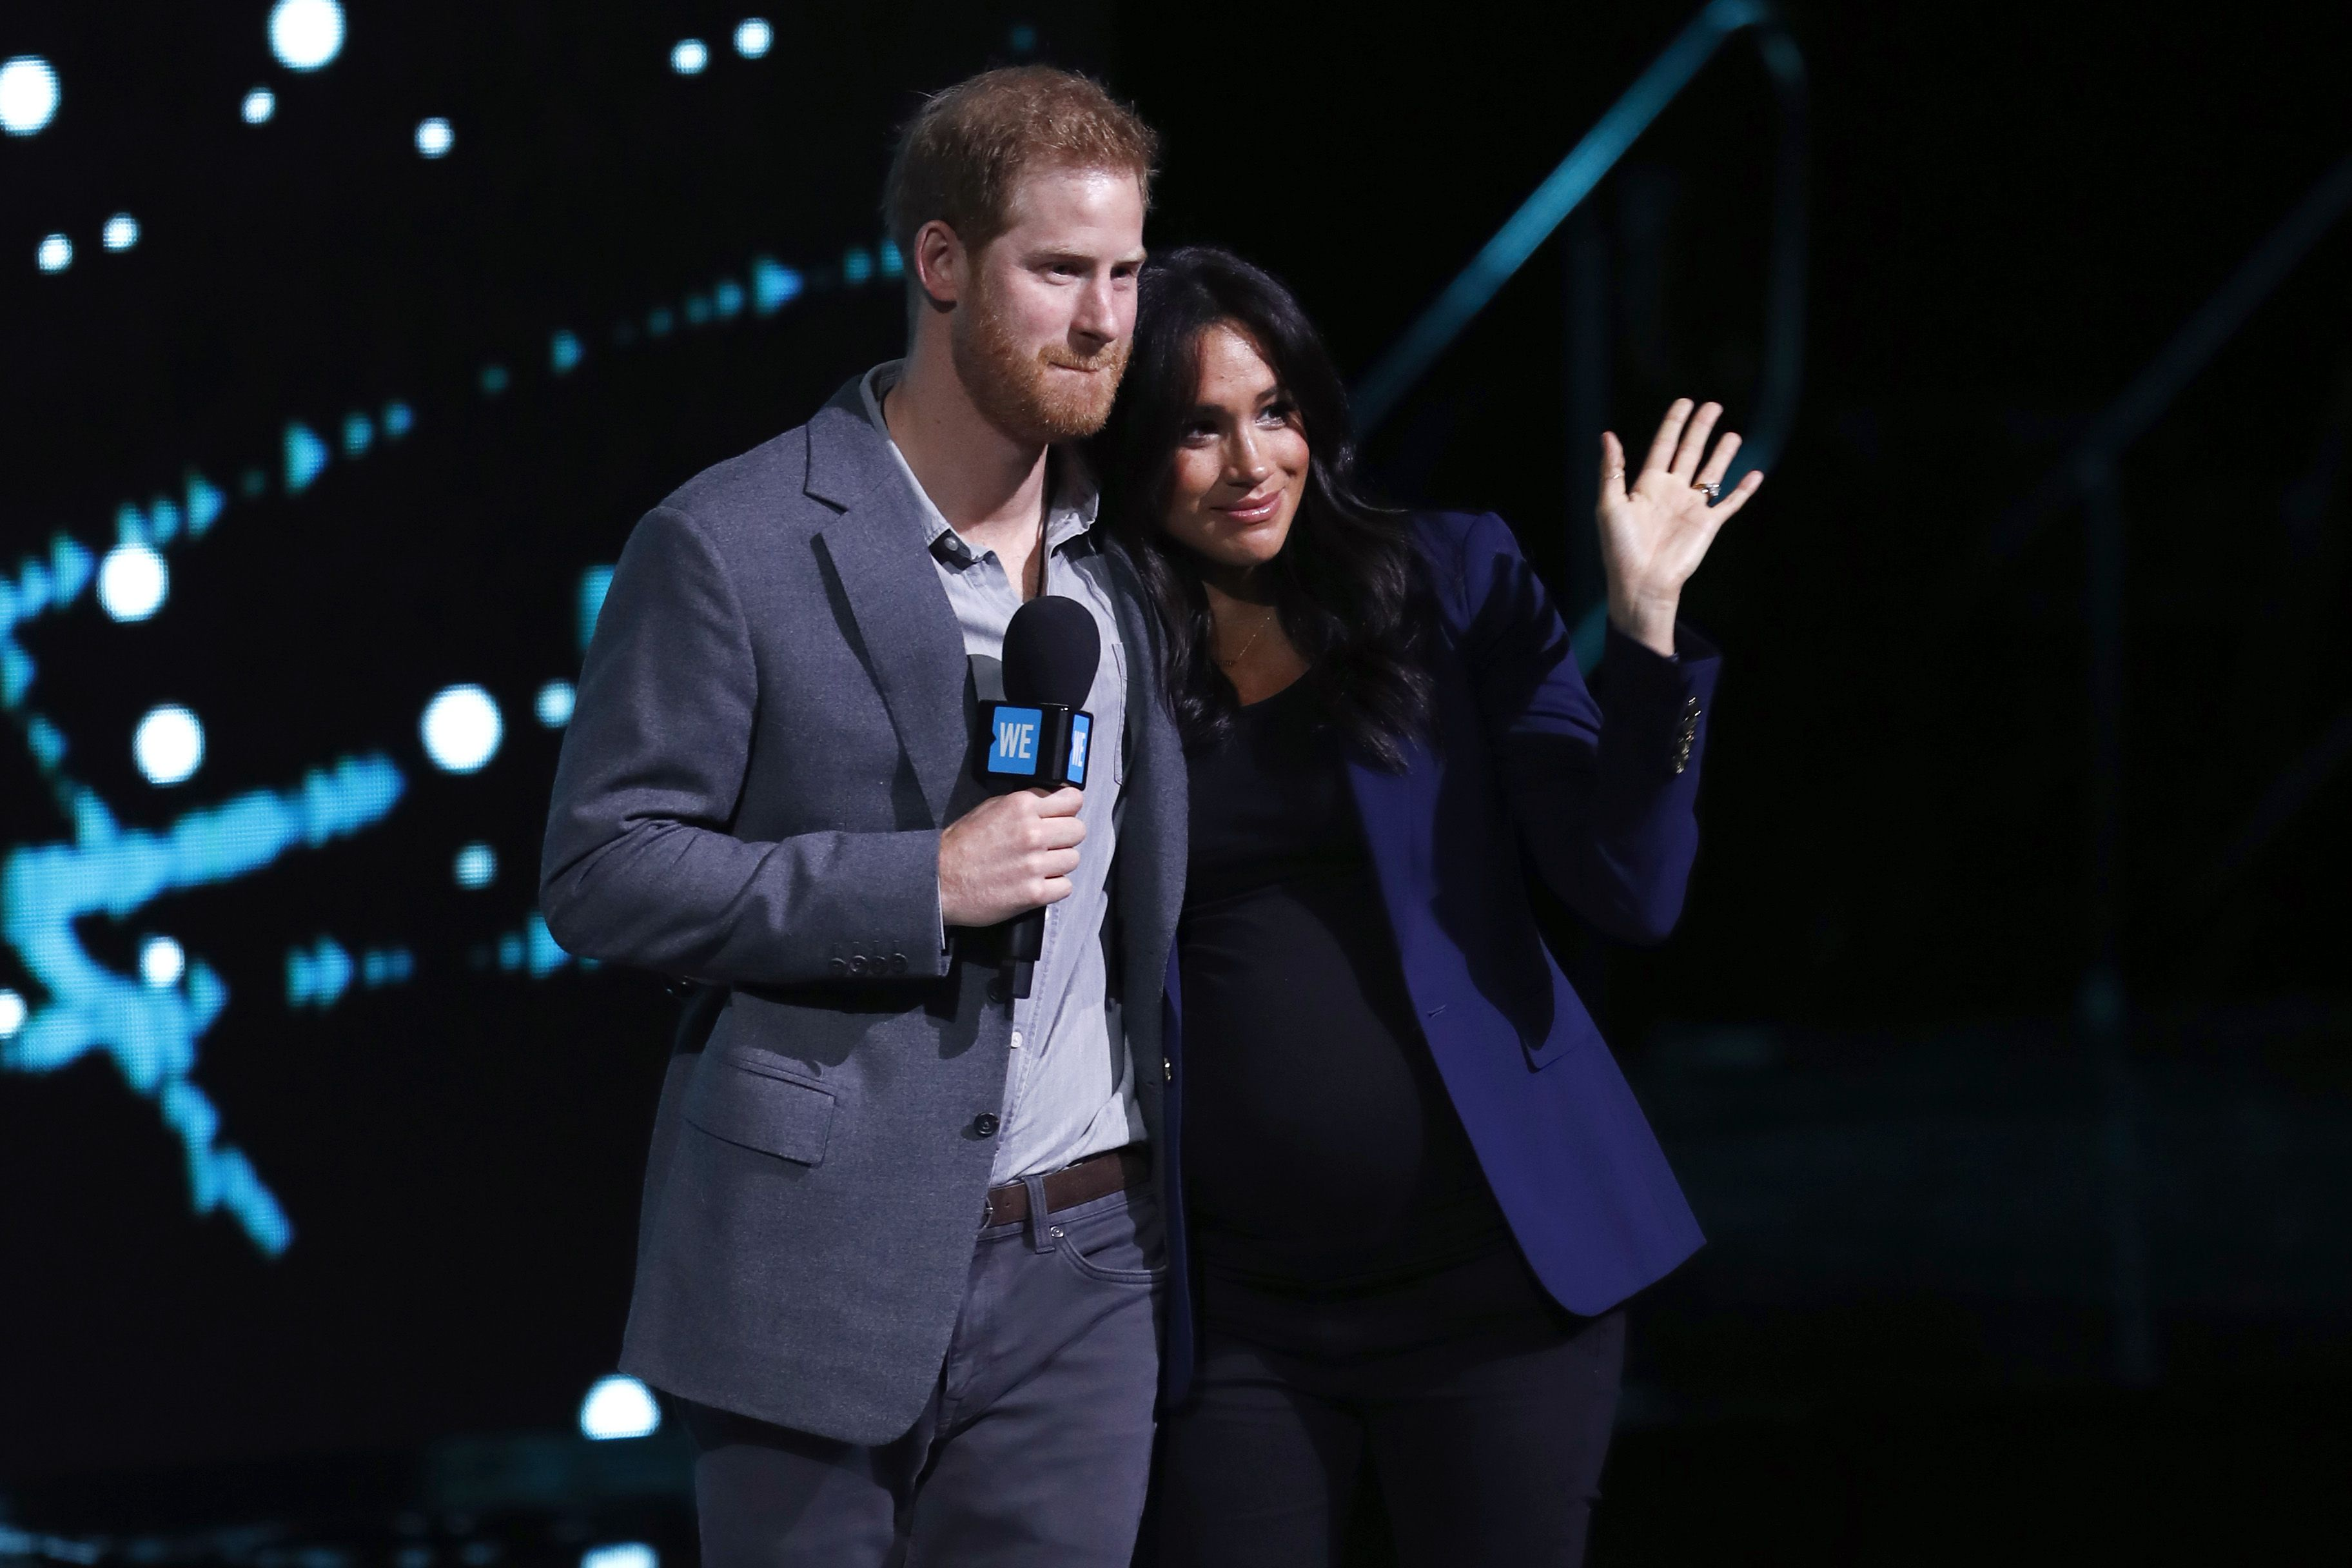 Royal Family Reaches an Agreement Regarding Meghan Markle and Prince Harry Stepping Down